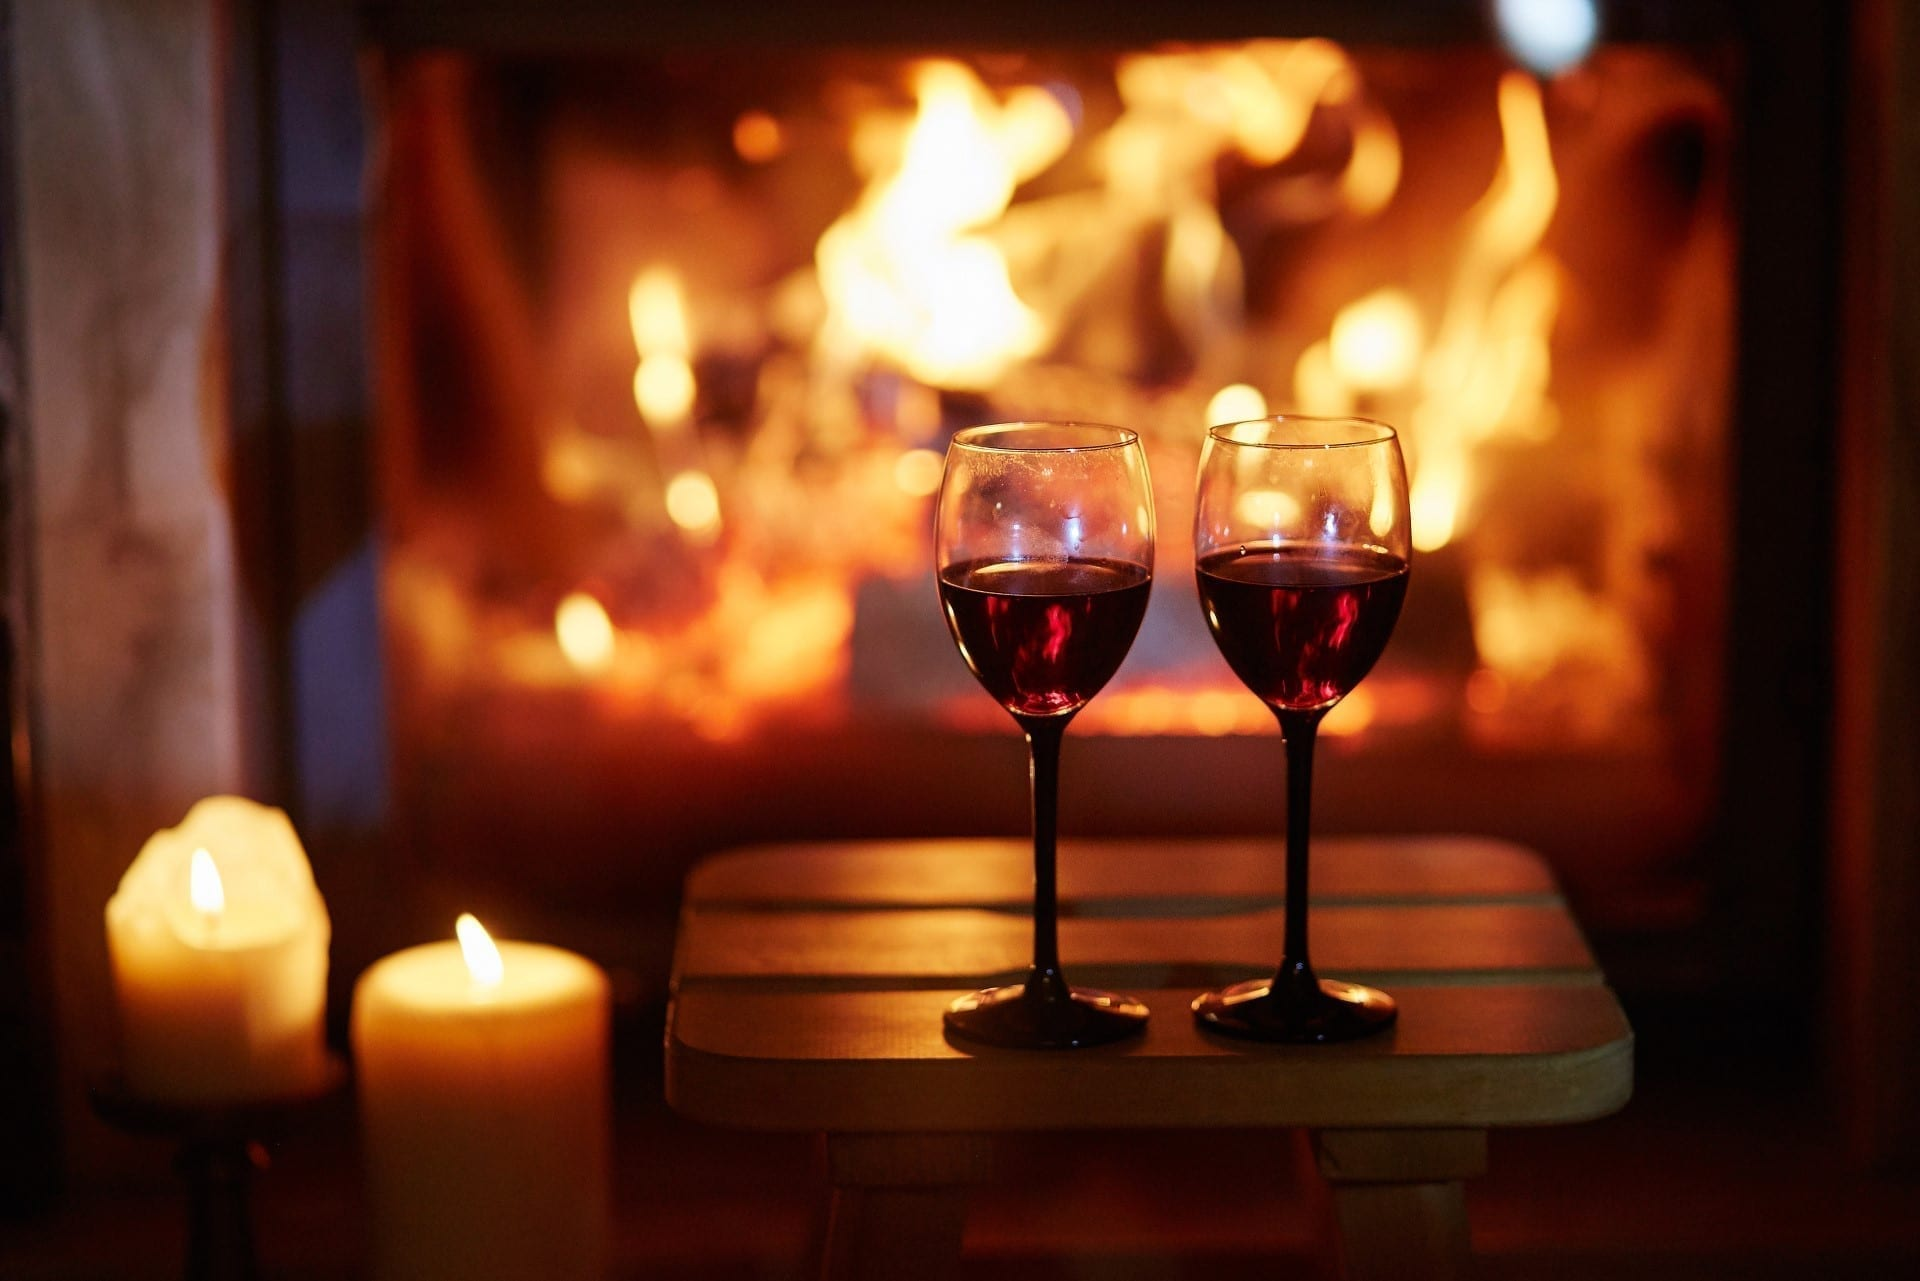 Two glasses of red wine near fireplace with many candles